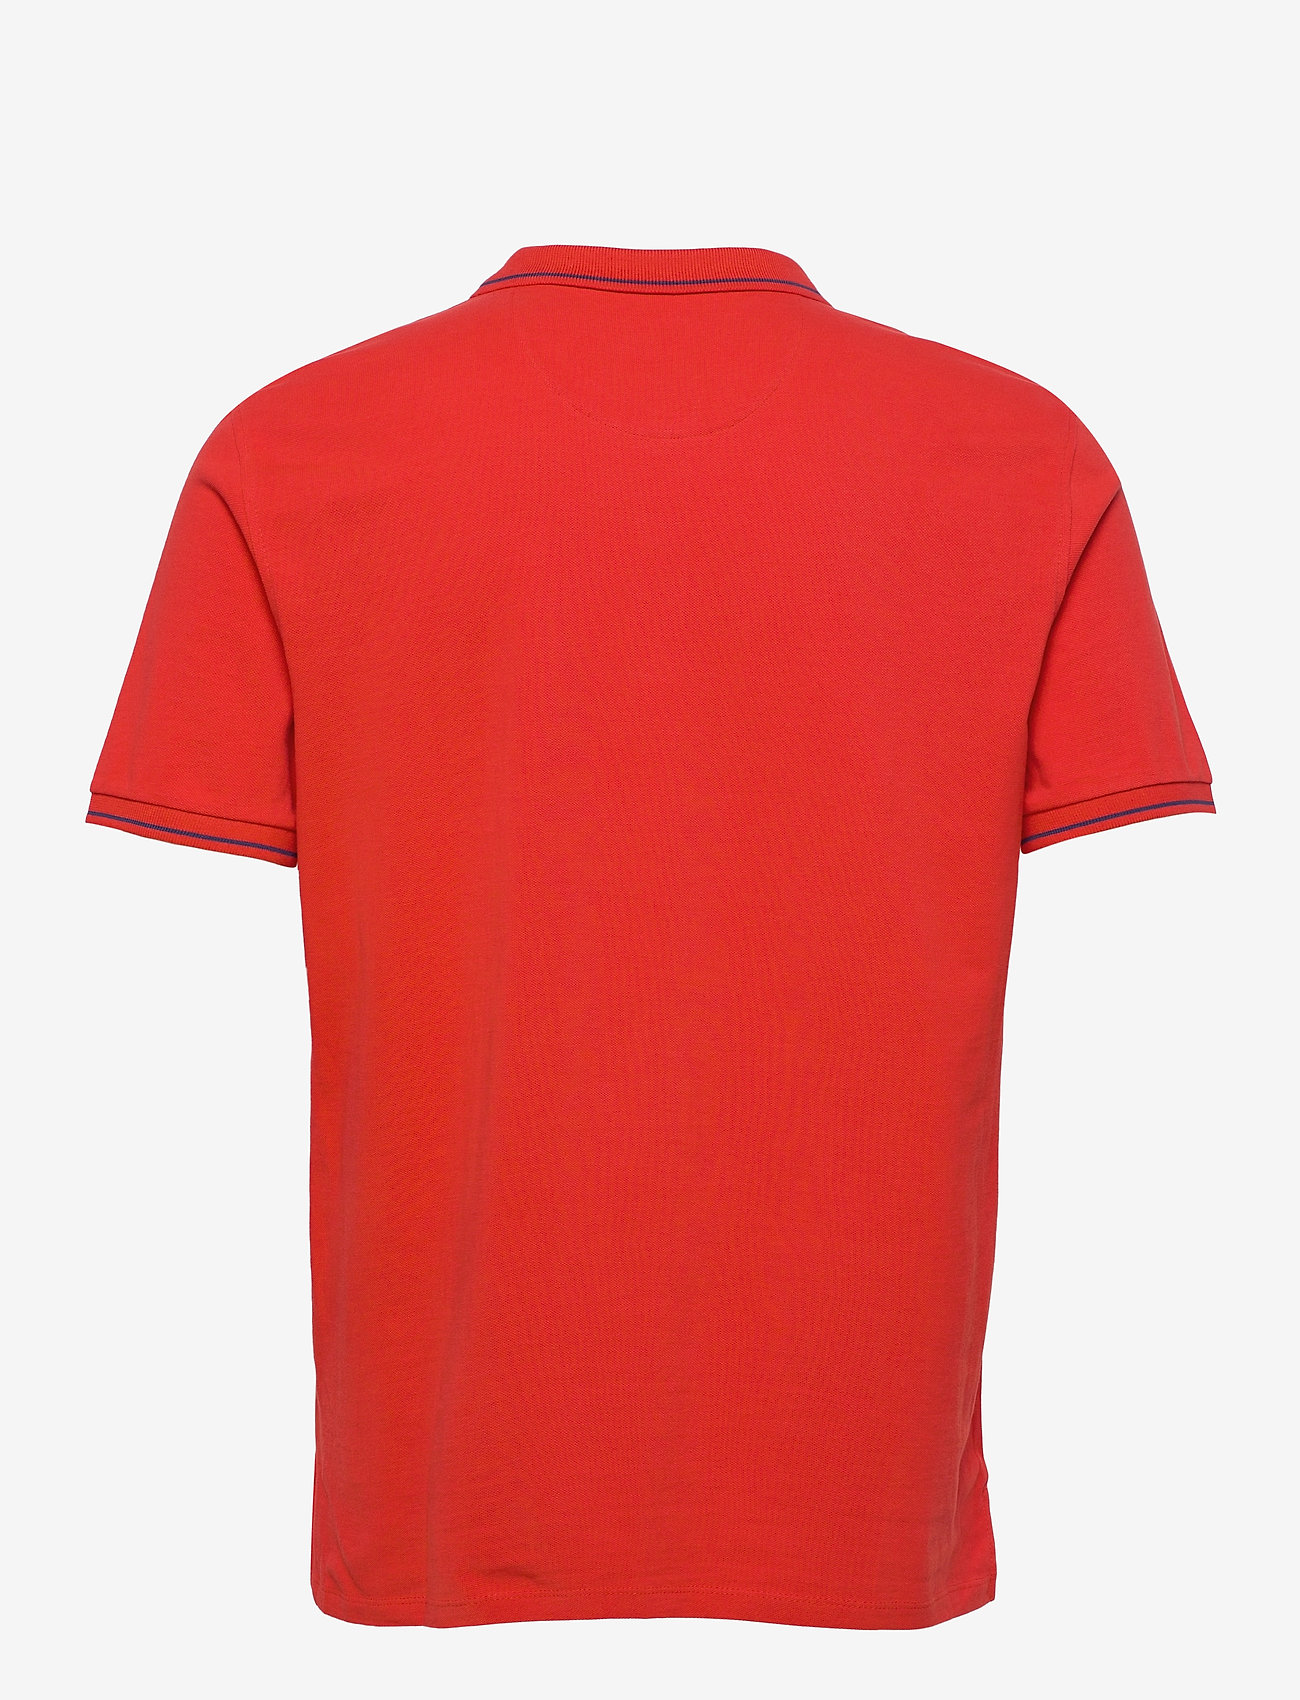 Lee Jeans - PIQUE POLO - short-sleeved polos - washed red - 1